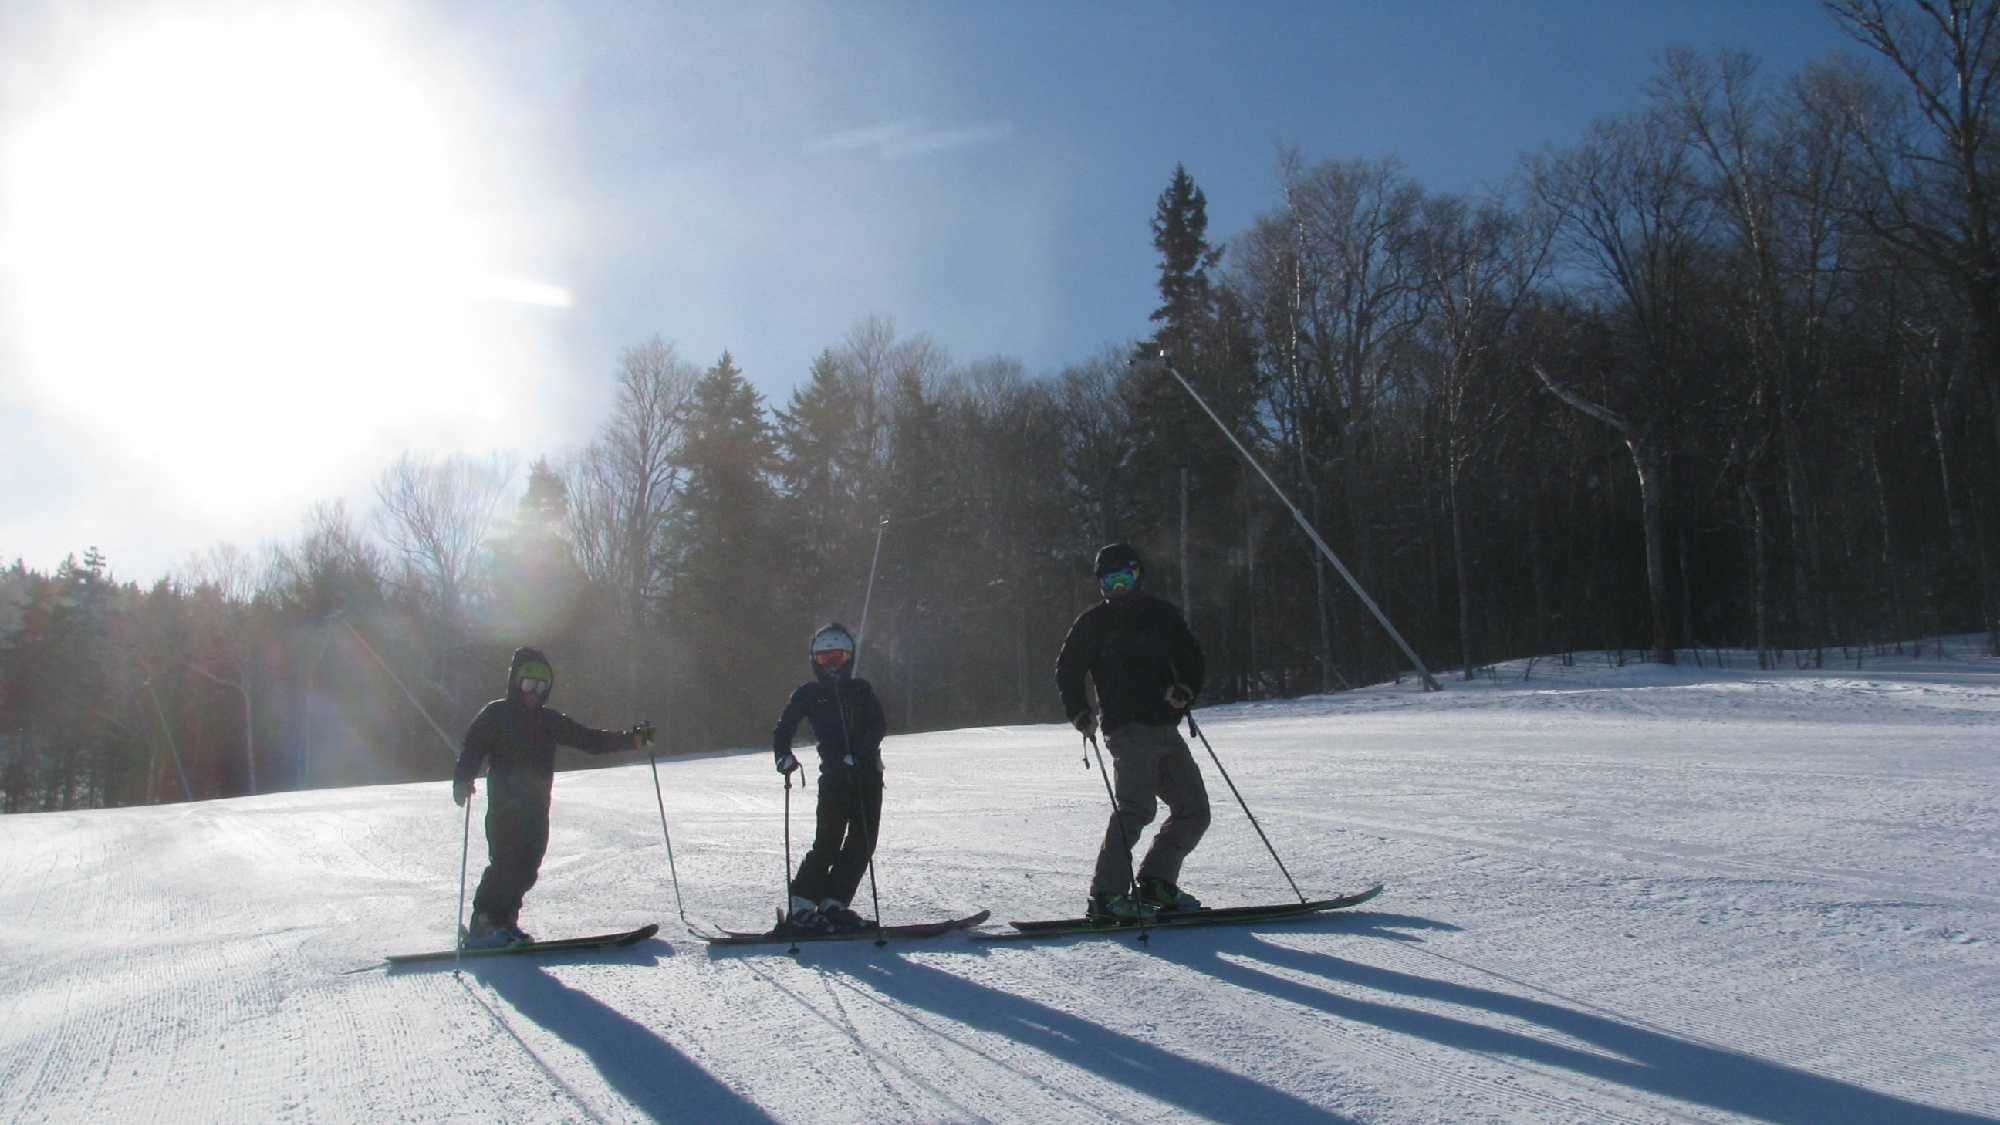 the nh ski industry Here's a reason to put away those nasty thoughts about all the snow we've been seeing this year: a new hampshire ski industry study says it had a $115 billion impact on the state's economy in 2012-13 according to the study, which was prepared by the institute for new hampshire studies at plymouth.